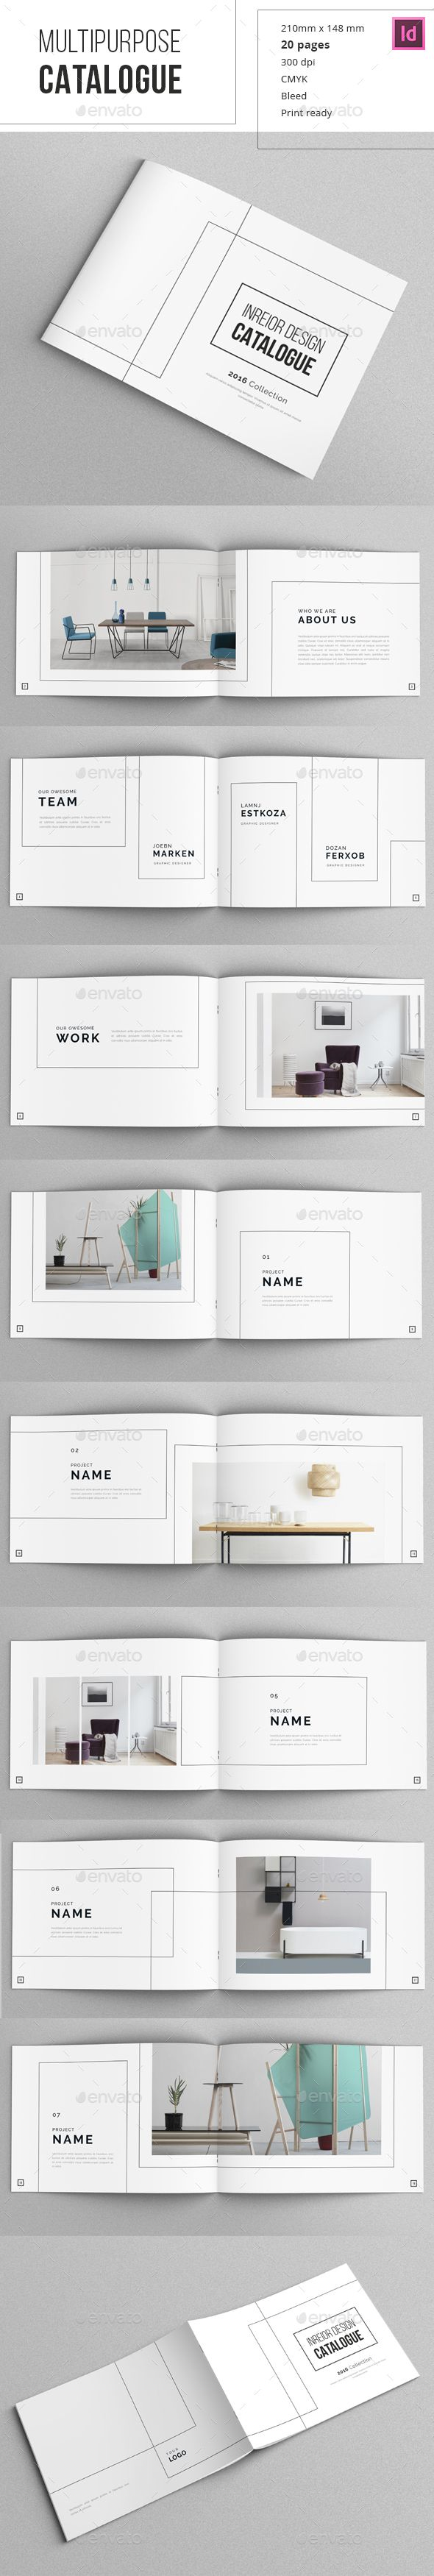 minimal indesign catalogue template.